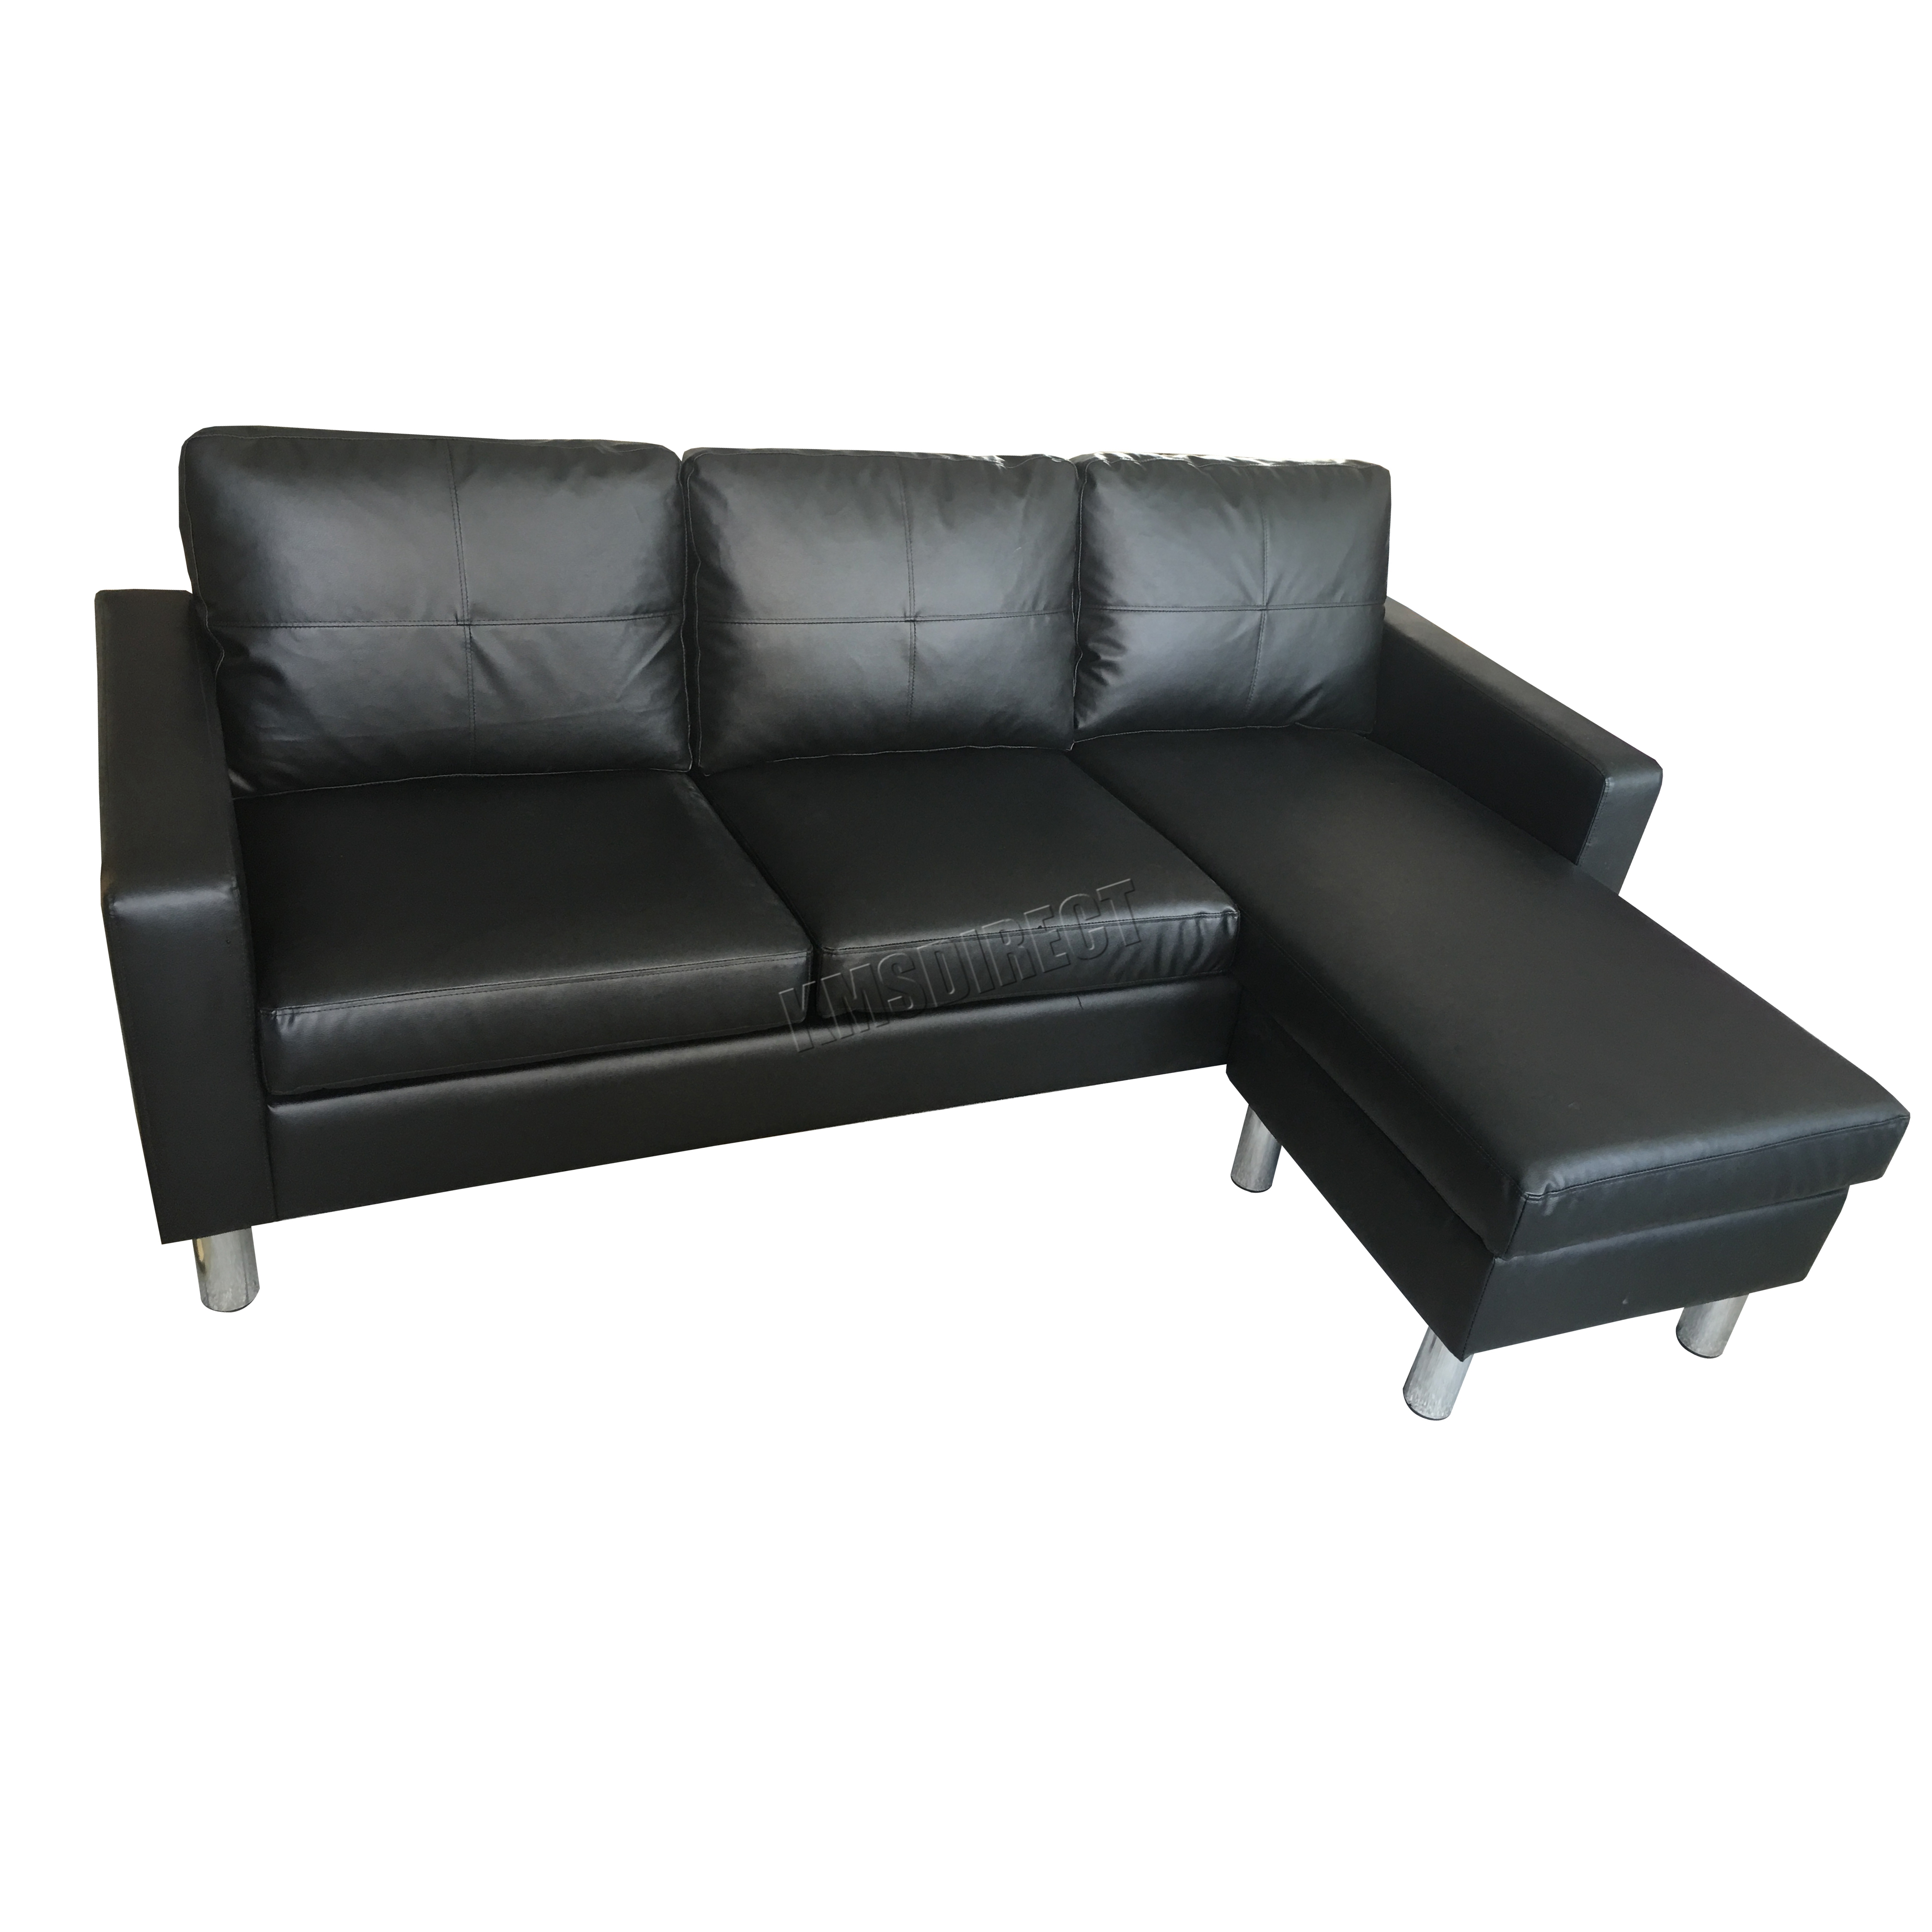 Foxhunter modern pu l shaped corner 3 seater sofa with for 3 seater sofa with chaise